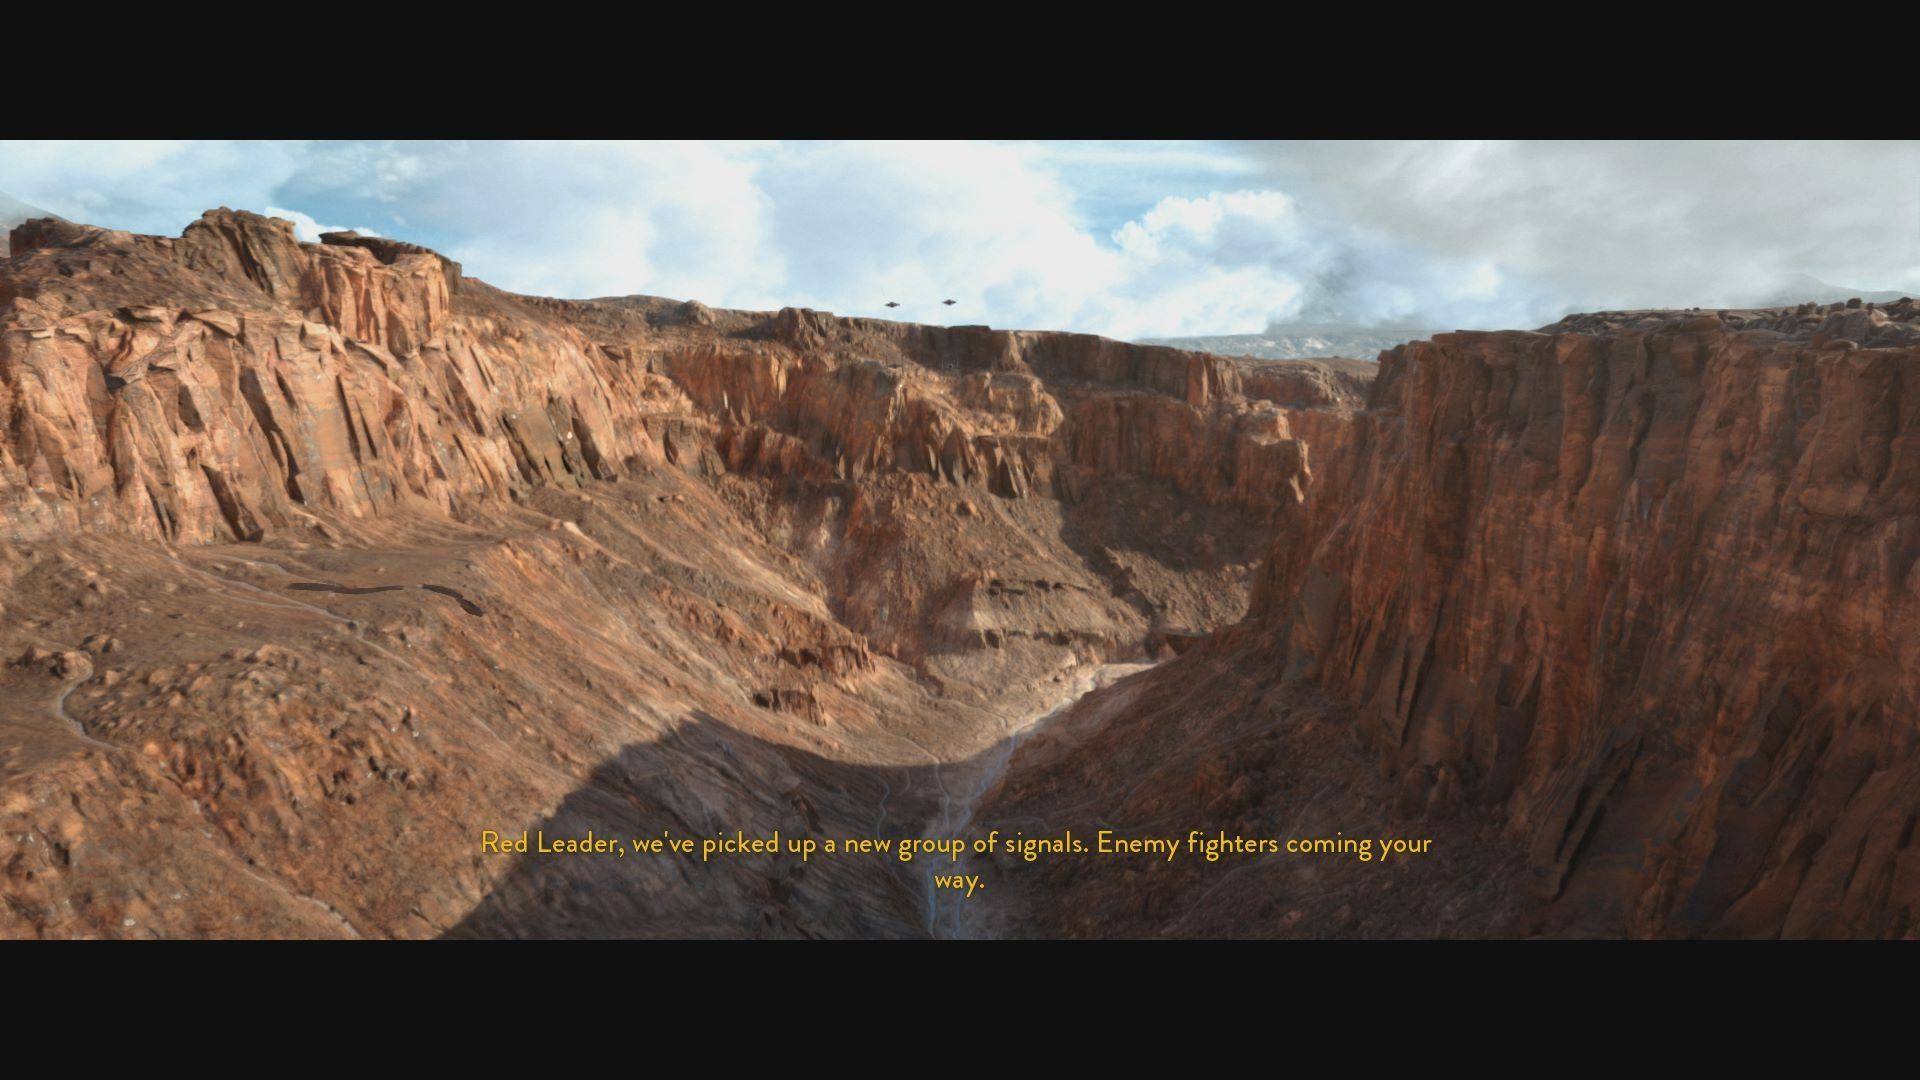 Star Wars Battlefront_Canyon Comparison_1